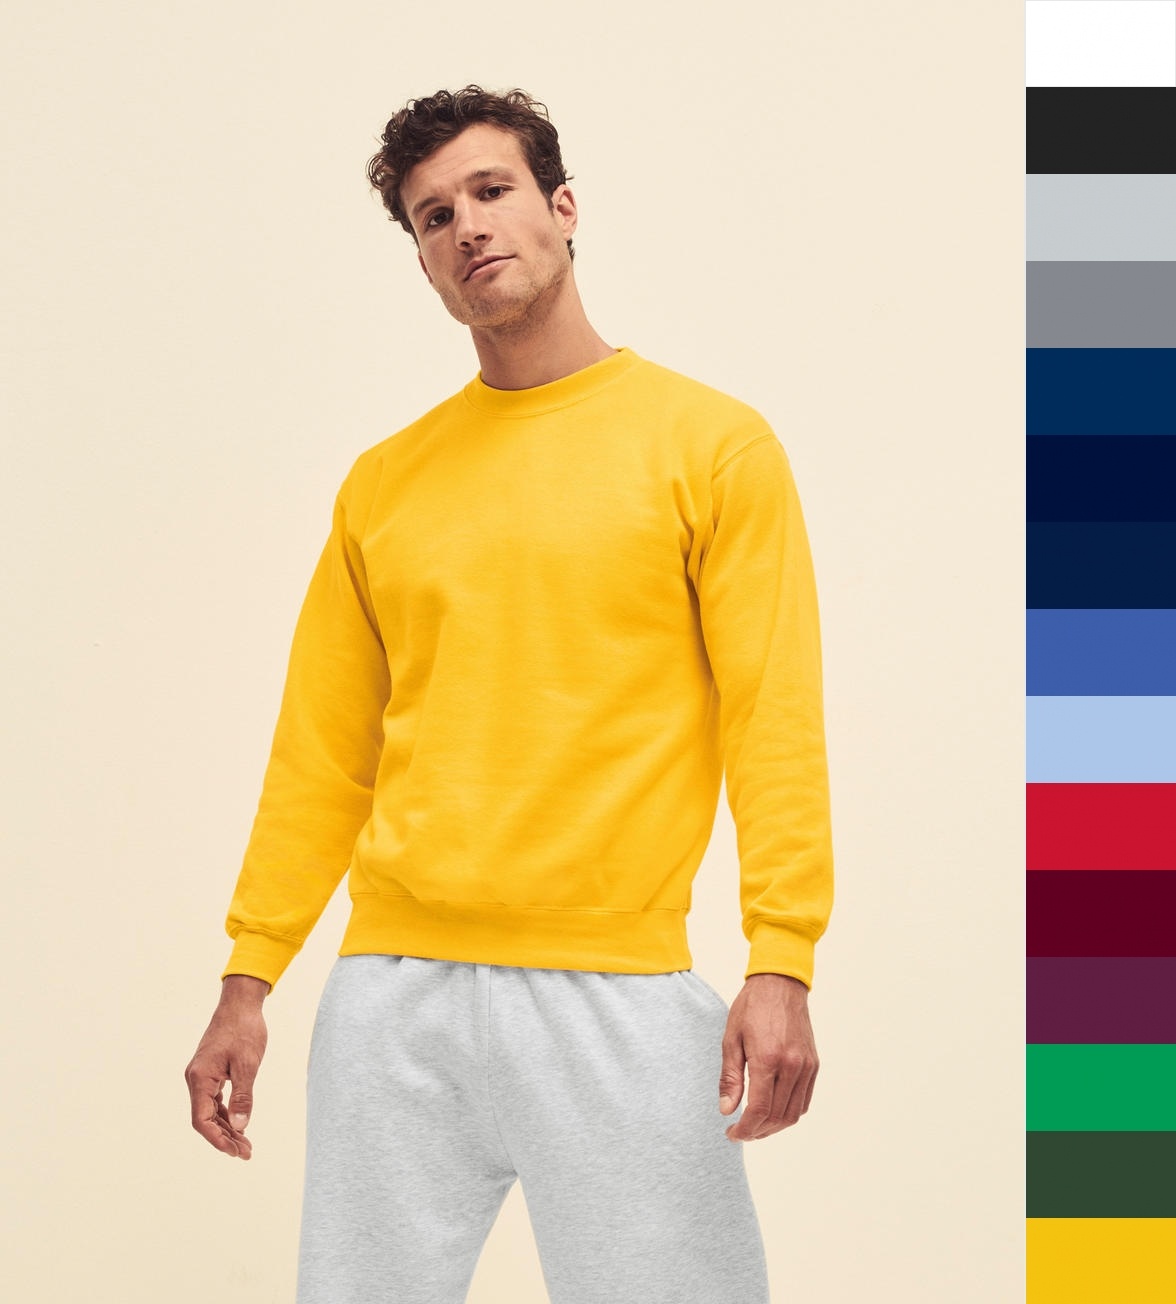 2er Pack Fruit of the Loom Herren Sweatshirts für je 18,99€